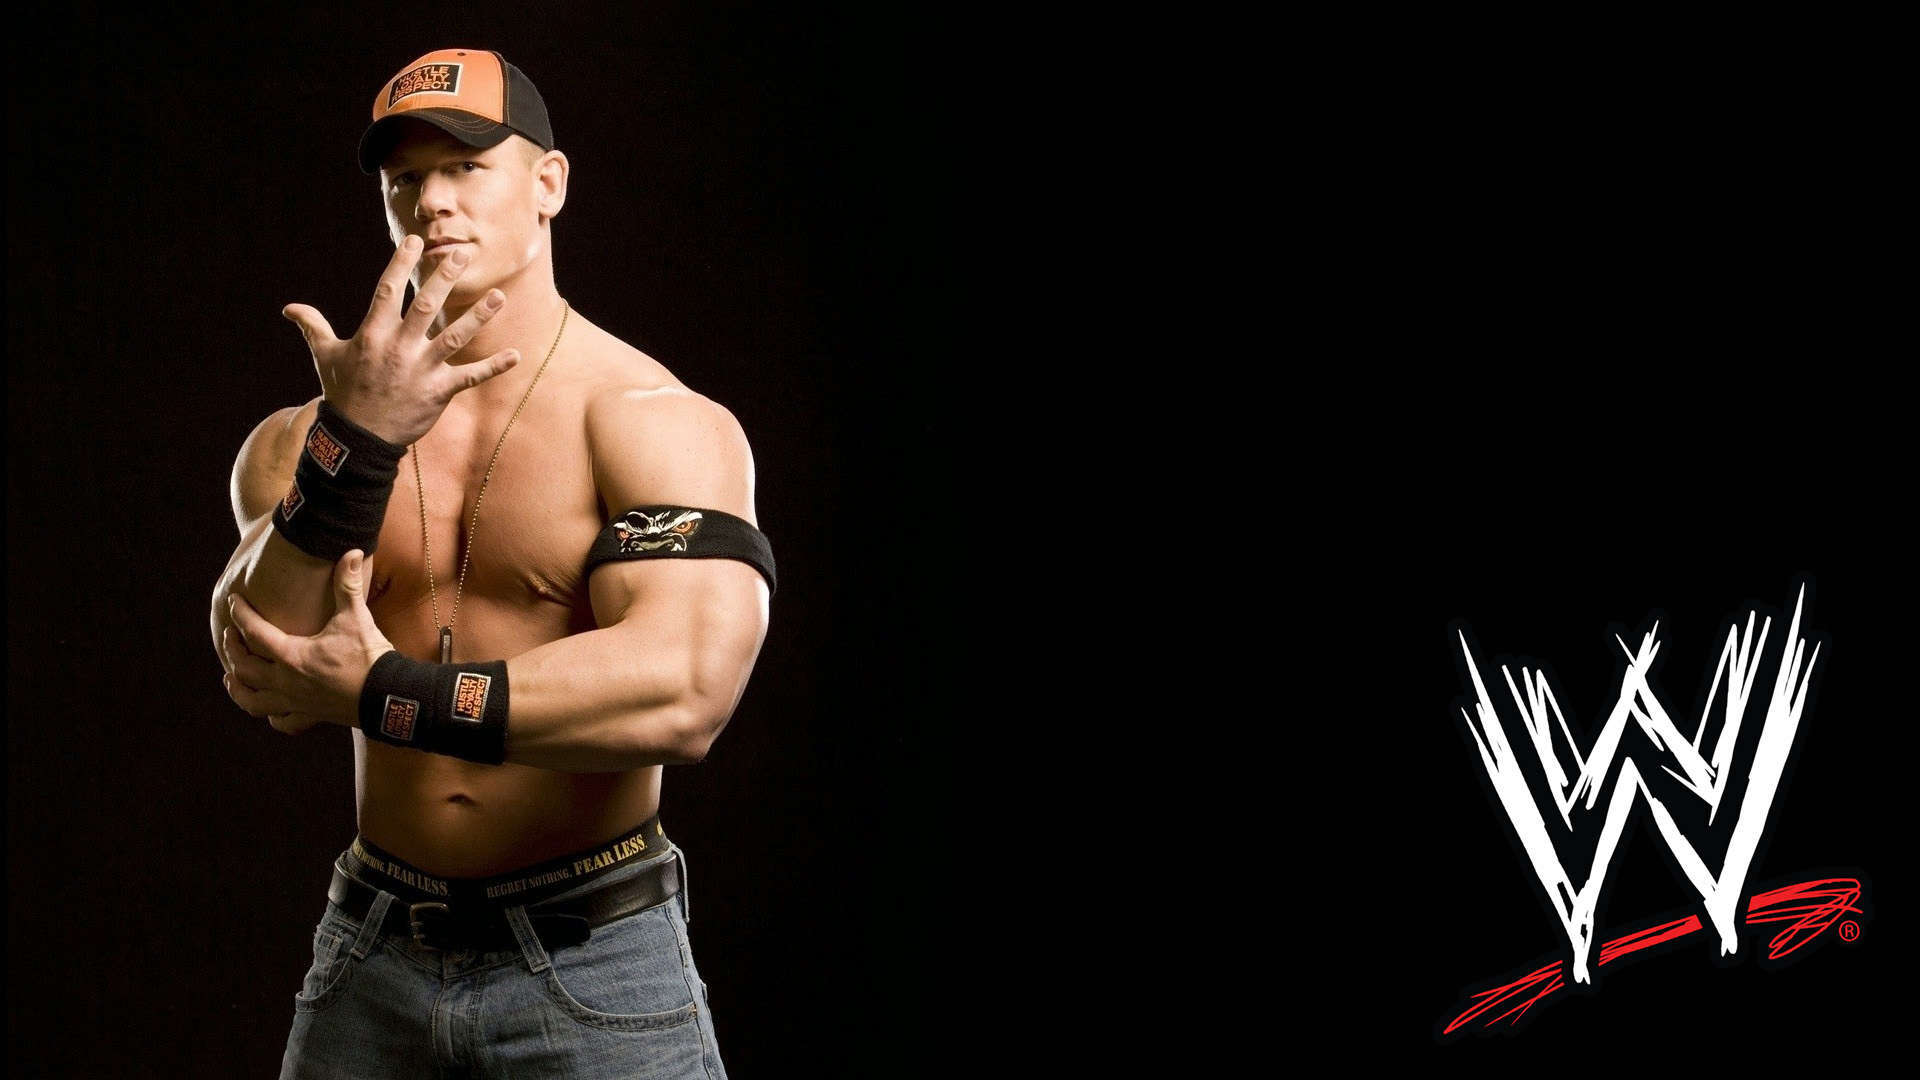 Brock Lesnar Hd Wallpaper Wwe Wallpapers Hd Pixelstalk Net